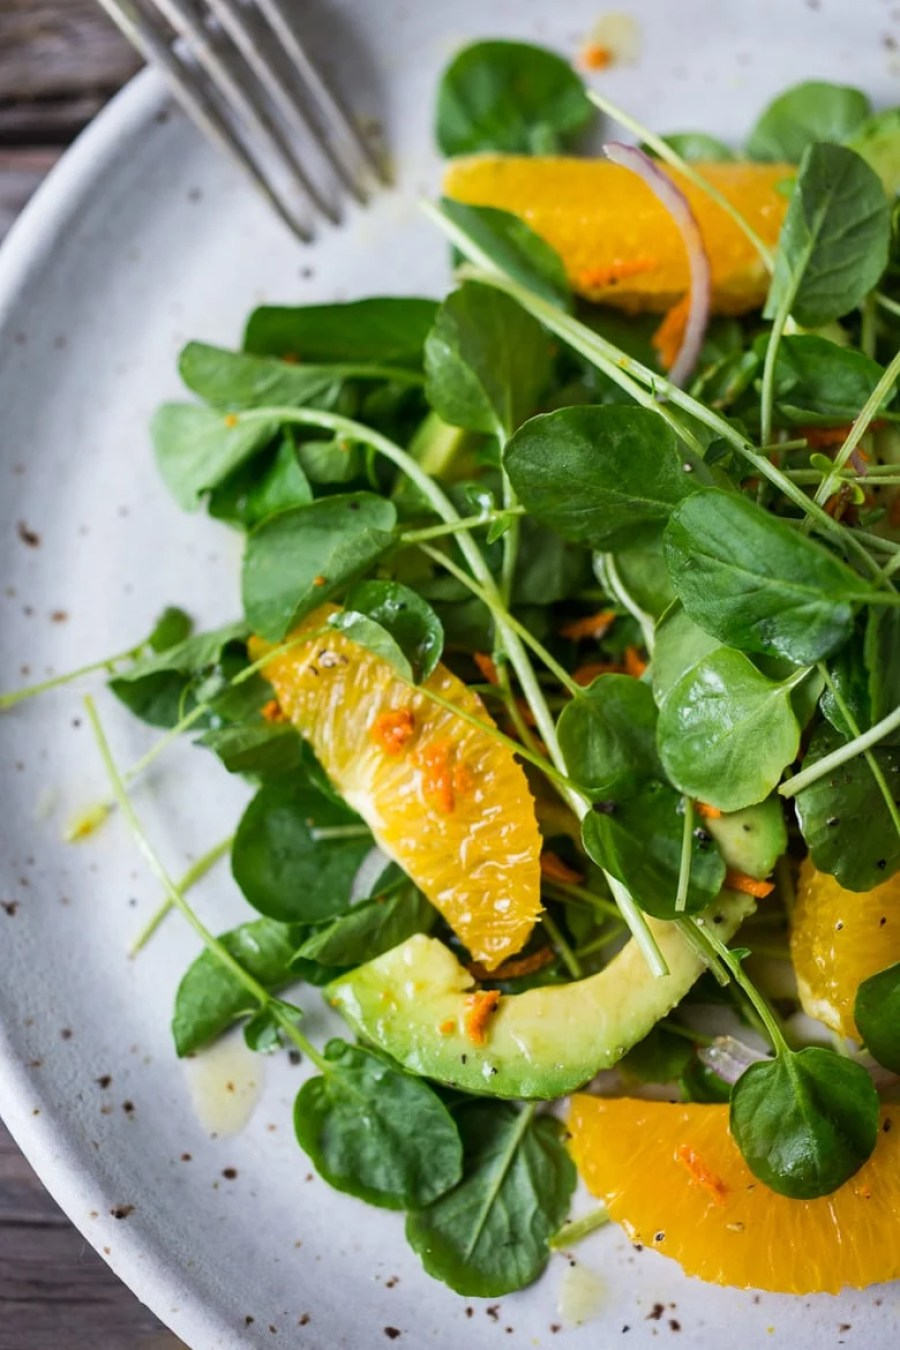 Cleansing Watercress Salad with Citrus, Avocado & Turmeric Dressing- a vibrant, peppery salad that is both energizing and gently detoxing with fresh turmeric root in the dressing. | www.feastingathome.com